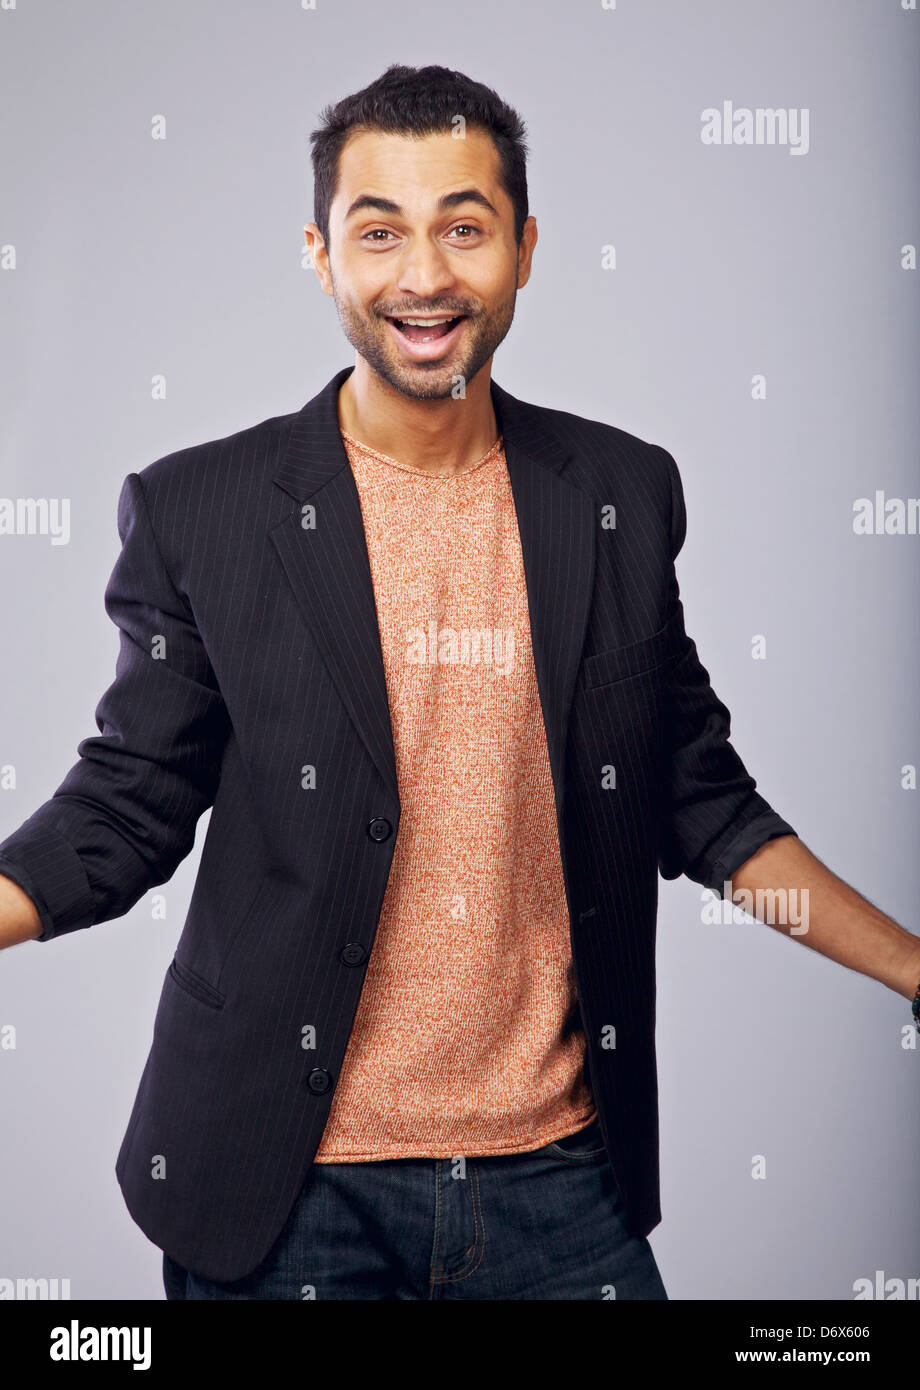 Portrait of a charming guy in a studio happy about something - Stock Image